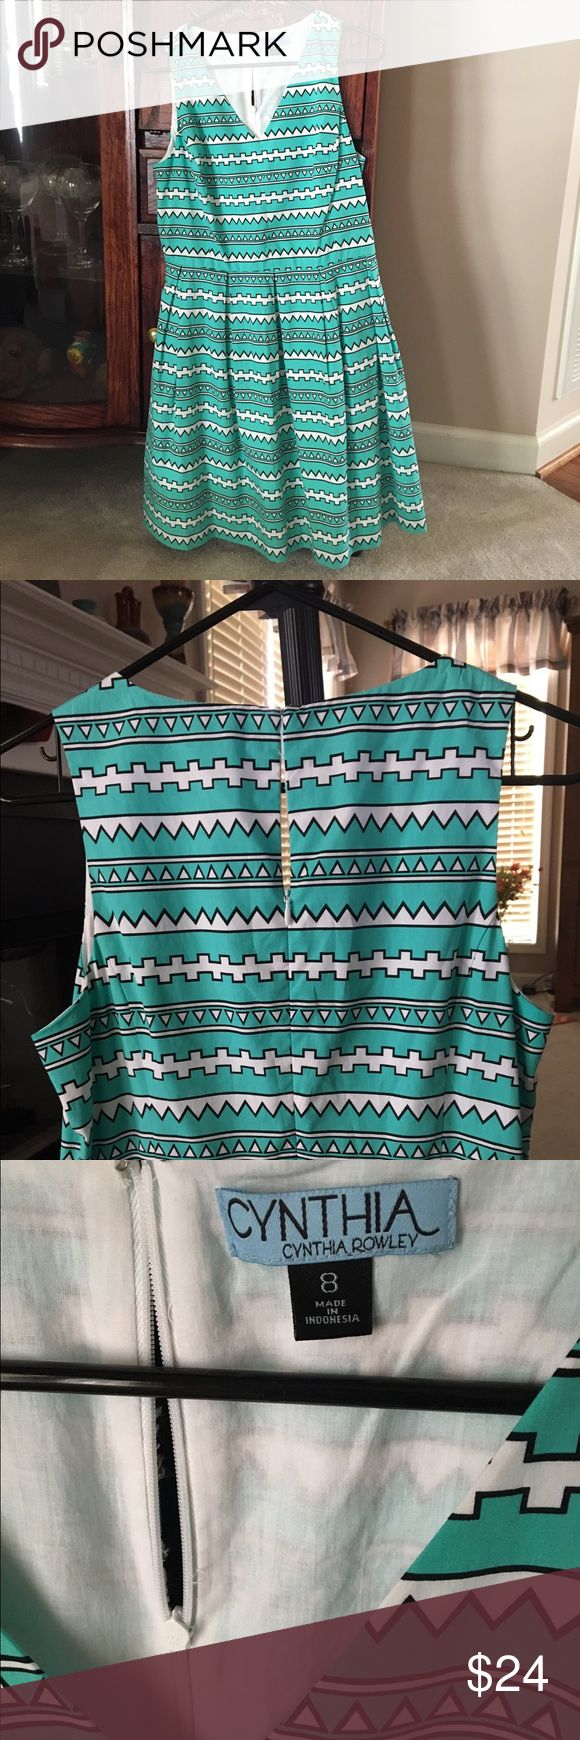 Cynthia Rowley Dress Green and white with black Aztec pattern. Zips up the back. Has a liner. Dress is cotton. Excellent condition! Cynthia Rowley Dresses Midi